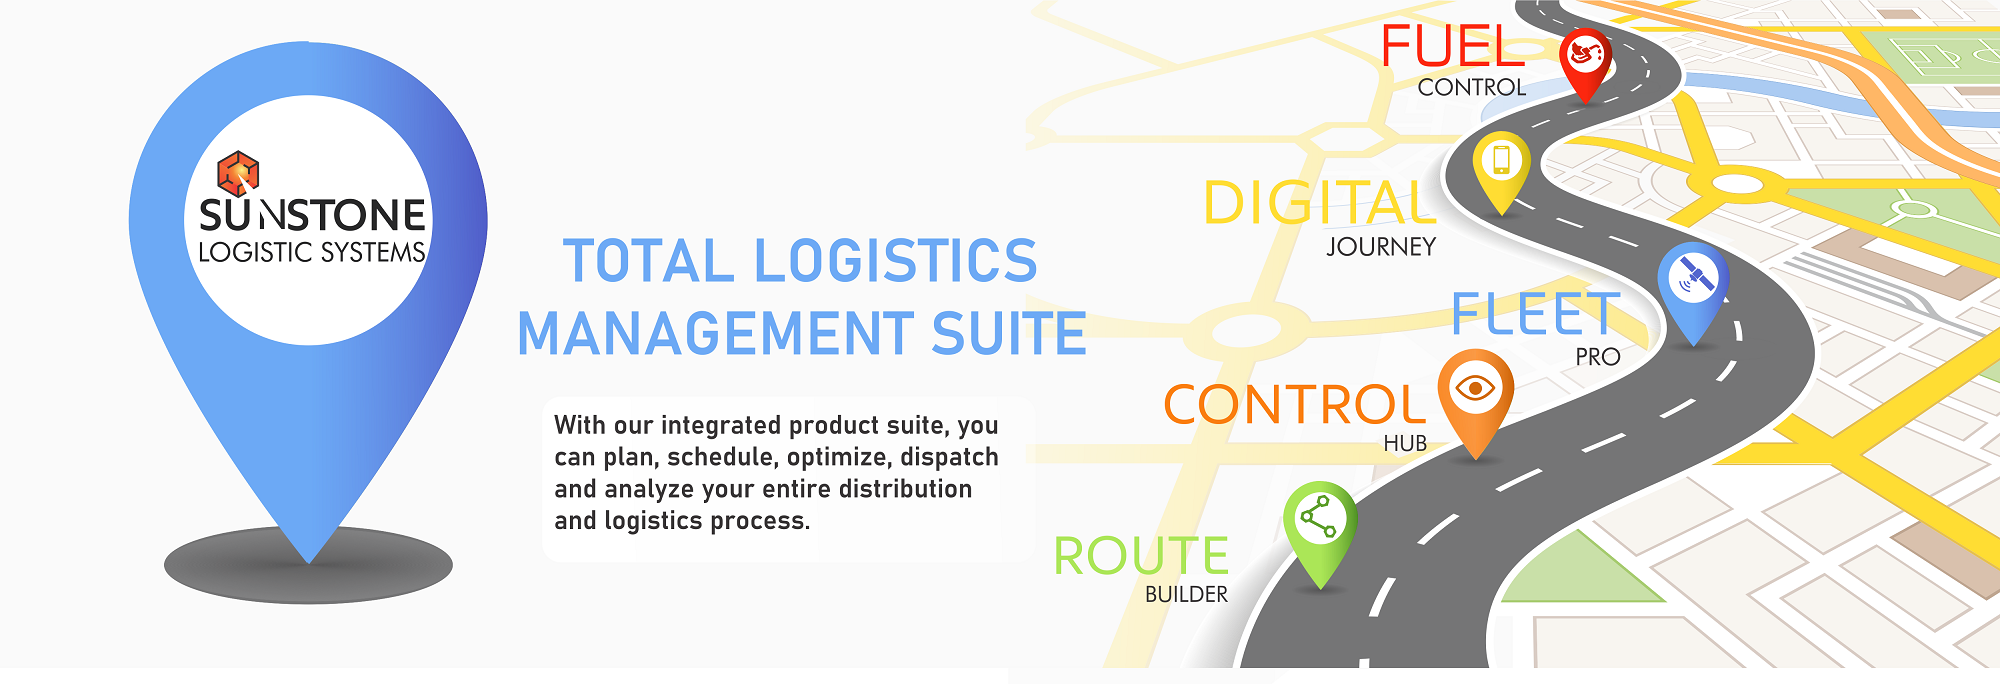 Total Logistics Management Suite - With Our integrated product suite you can plan, schedule, optimize, dispatch and analyse your entire distribution and logistics process.